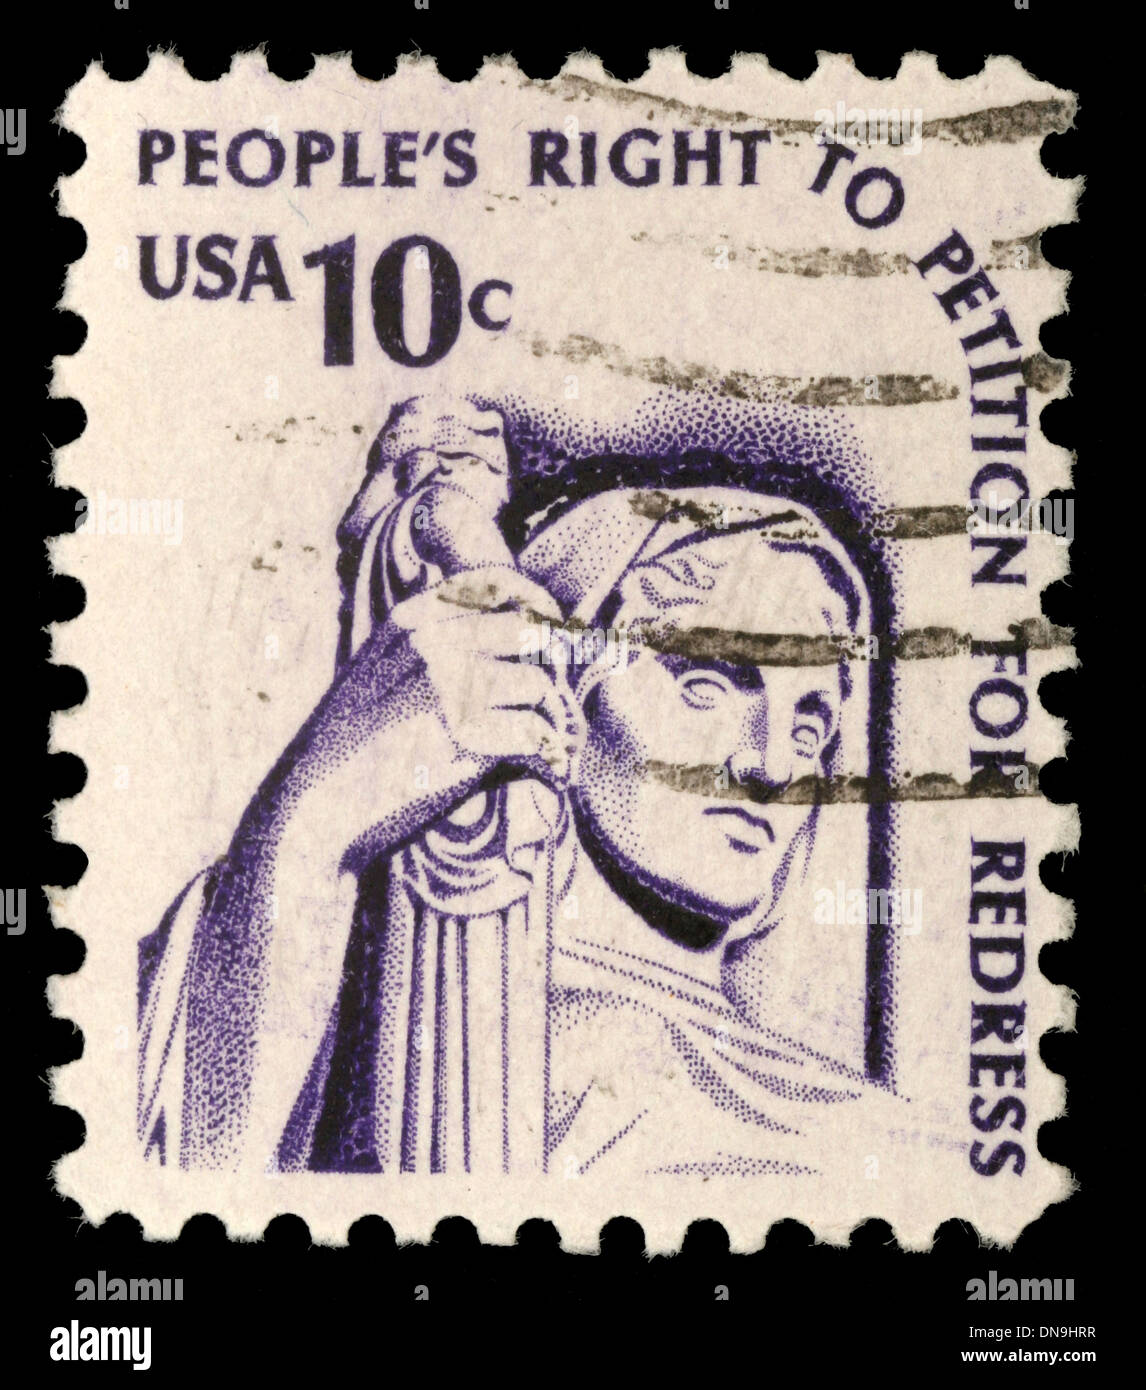 USA - CIRCA 1975: A stamp printed in the USA shows Contemplation of Justice (statue, J. E. Fraser), circa 1975 - Stock Image